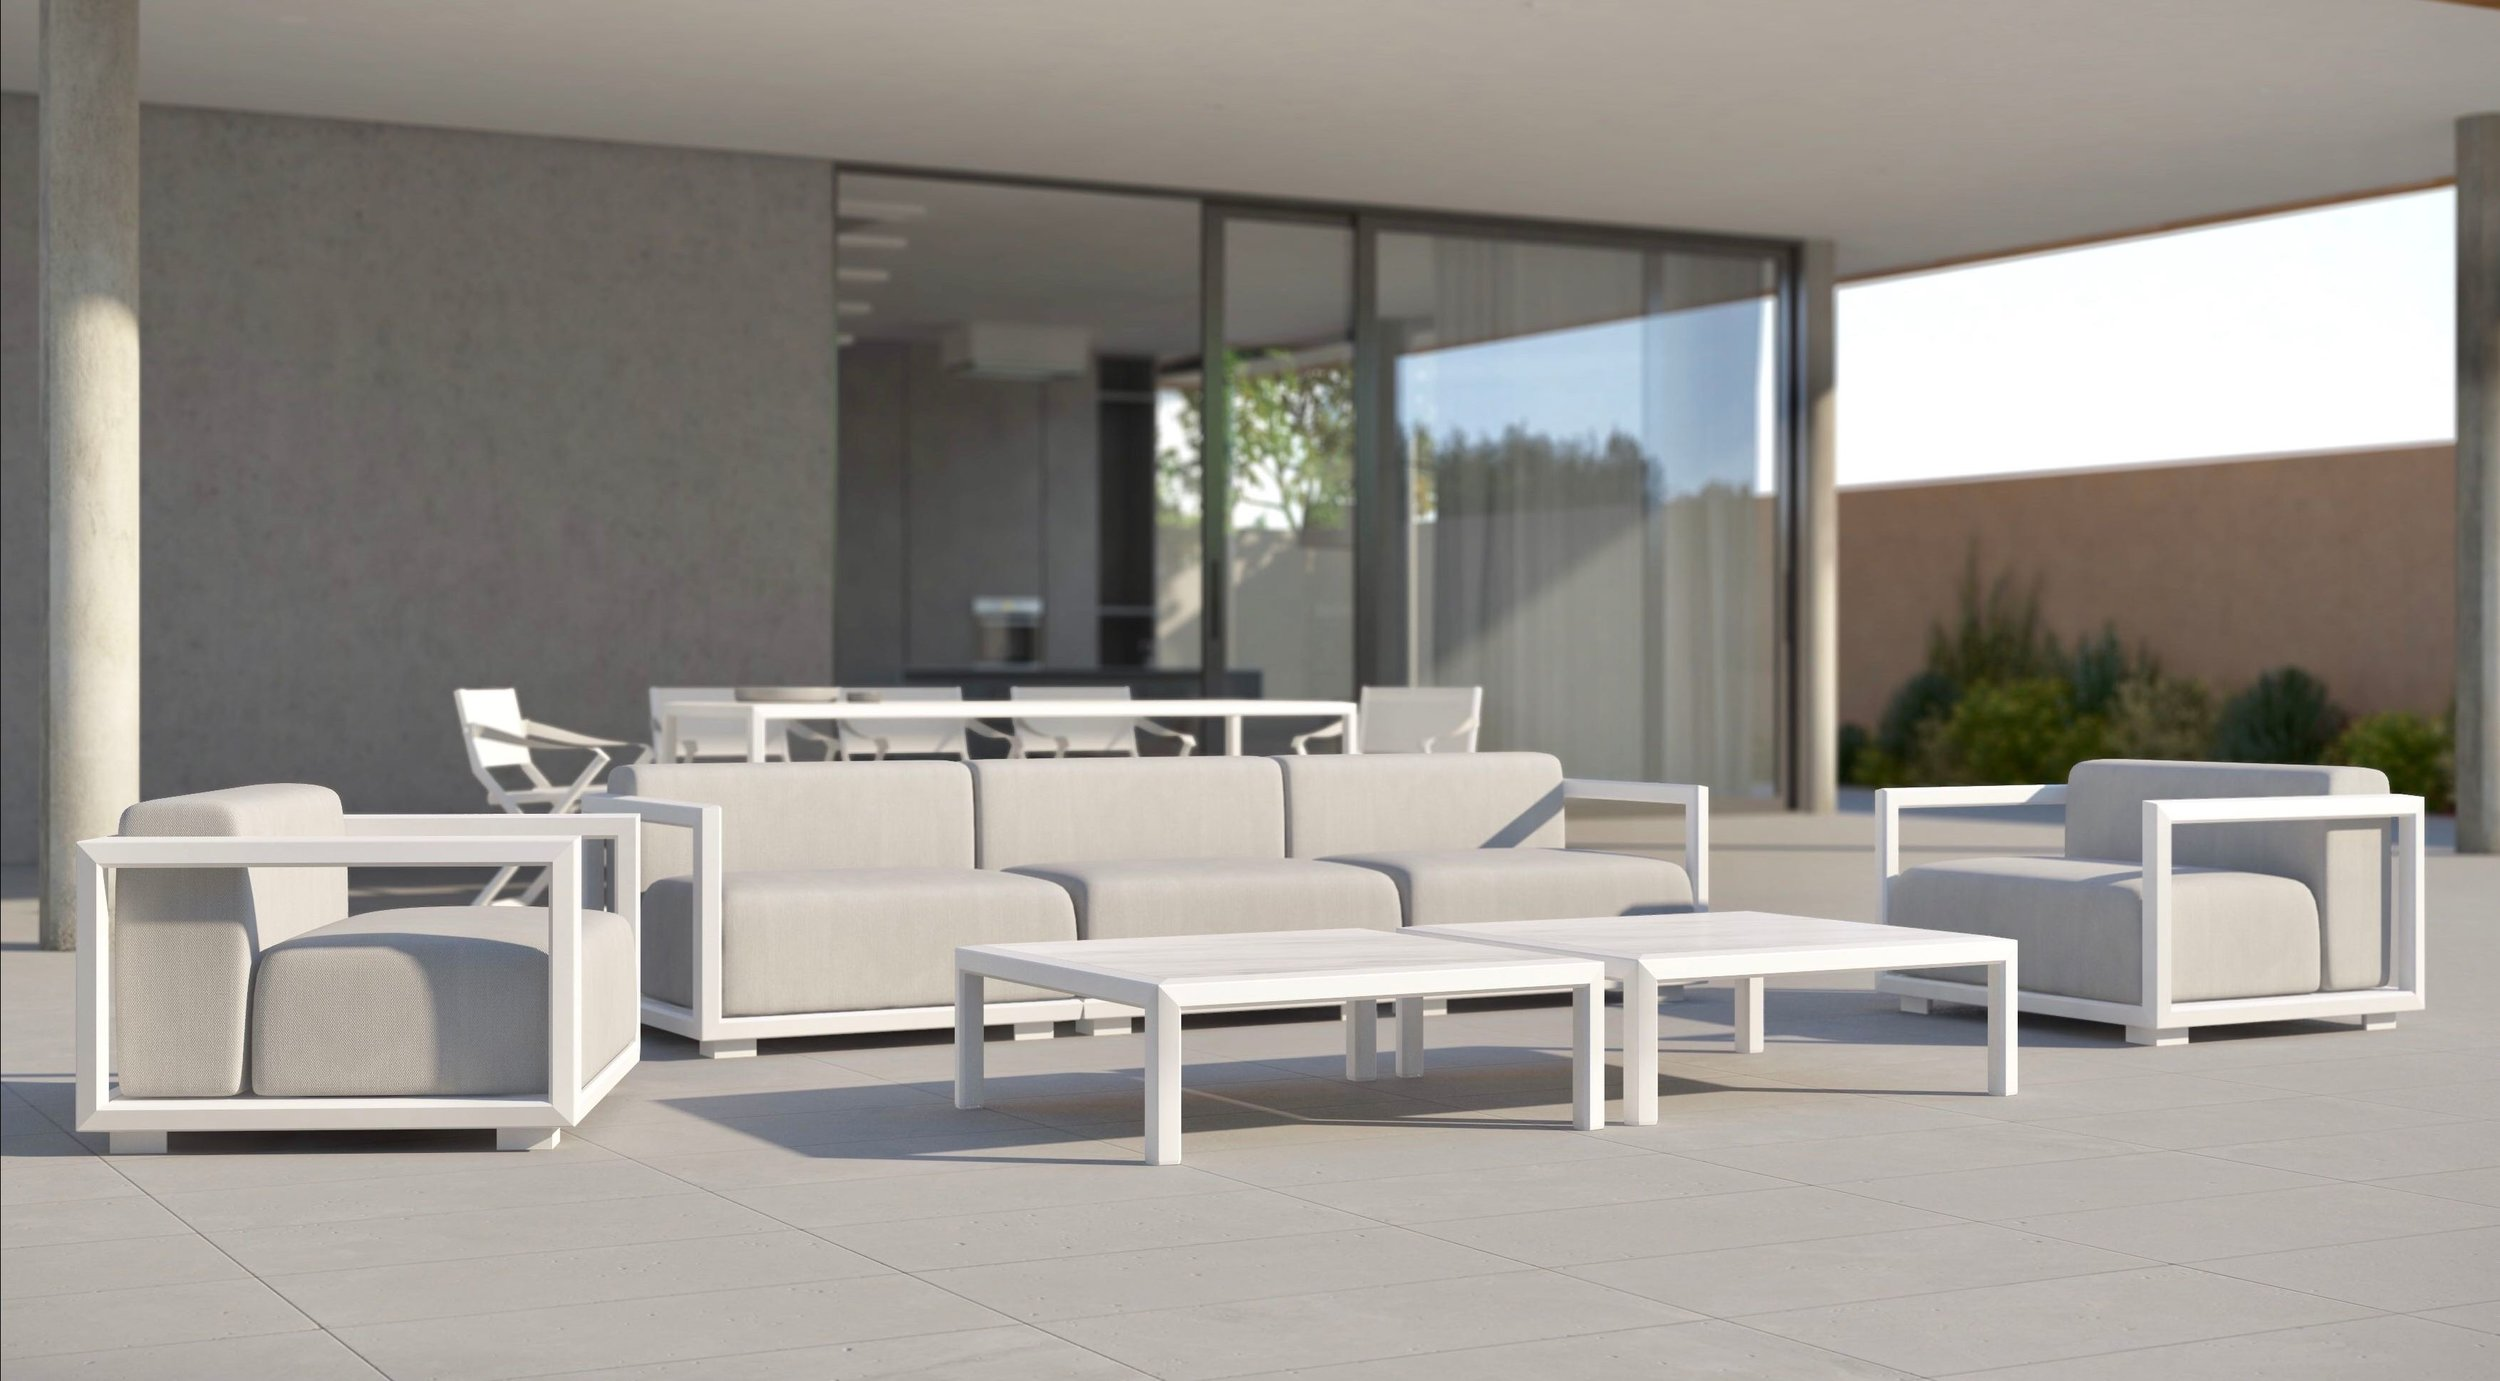 Outdoor sofas - armchairs - tables - chairs - coffee tables